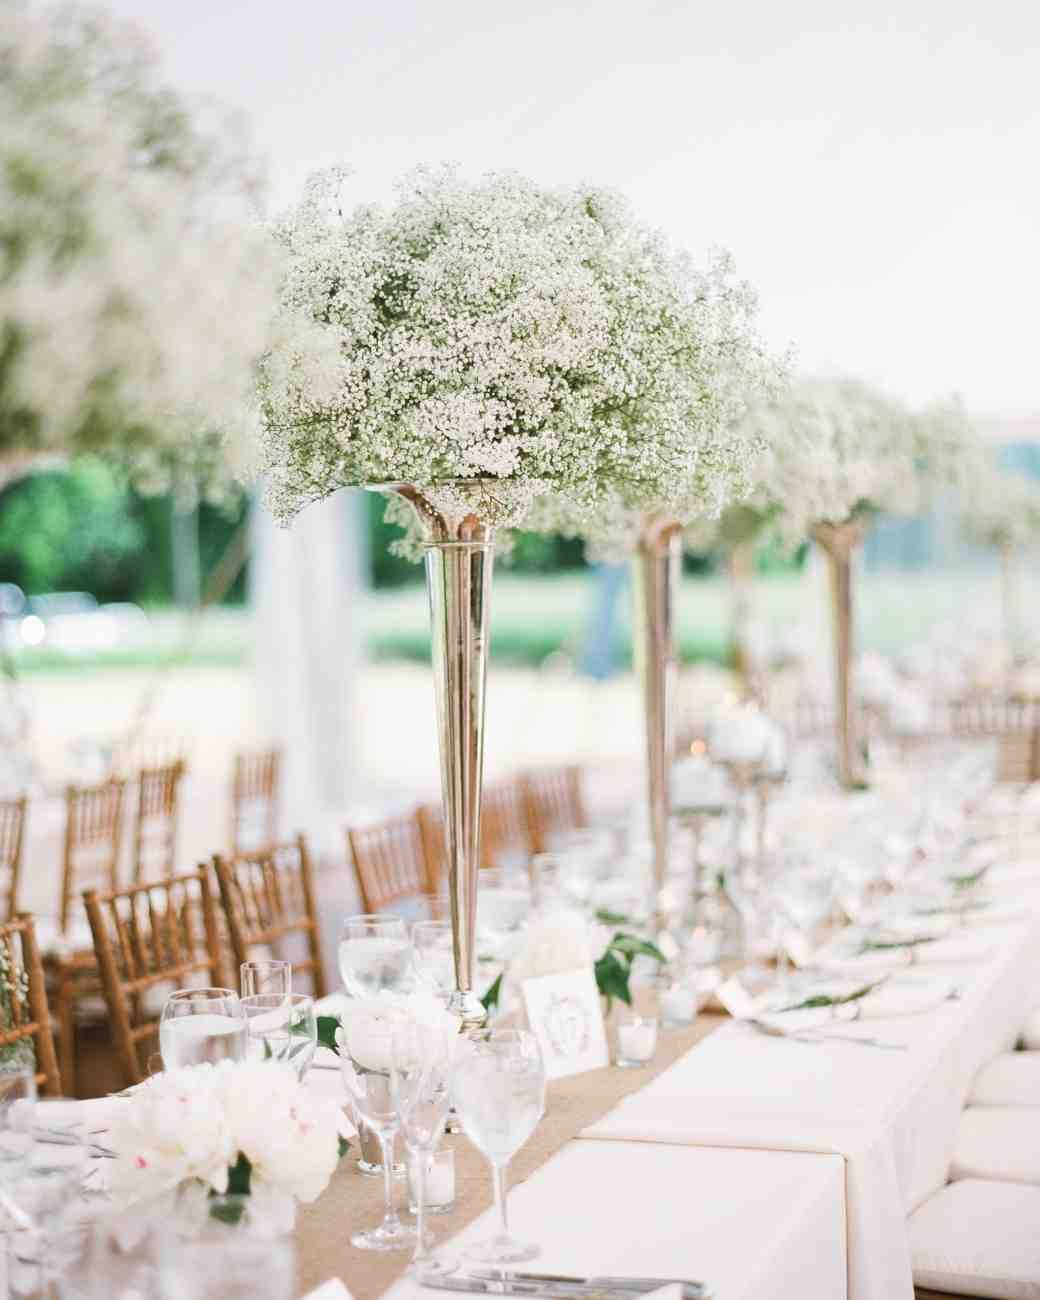 79 White Wedding Centerpieces White Wedding Centerpieces Tall Wedding Centerpieces Peonies Wedding Centerpieces